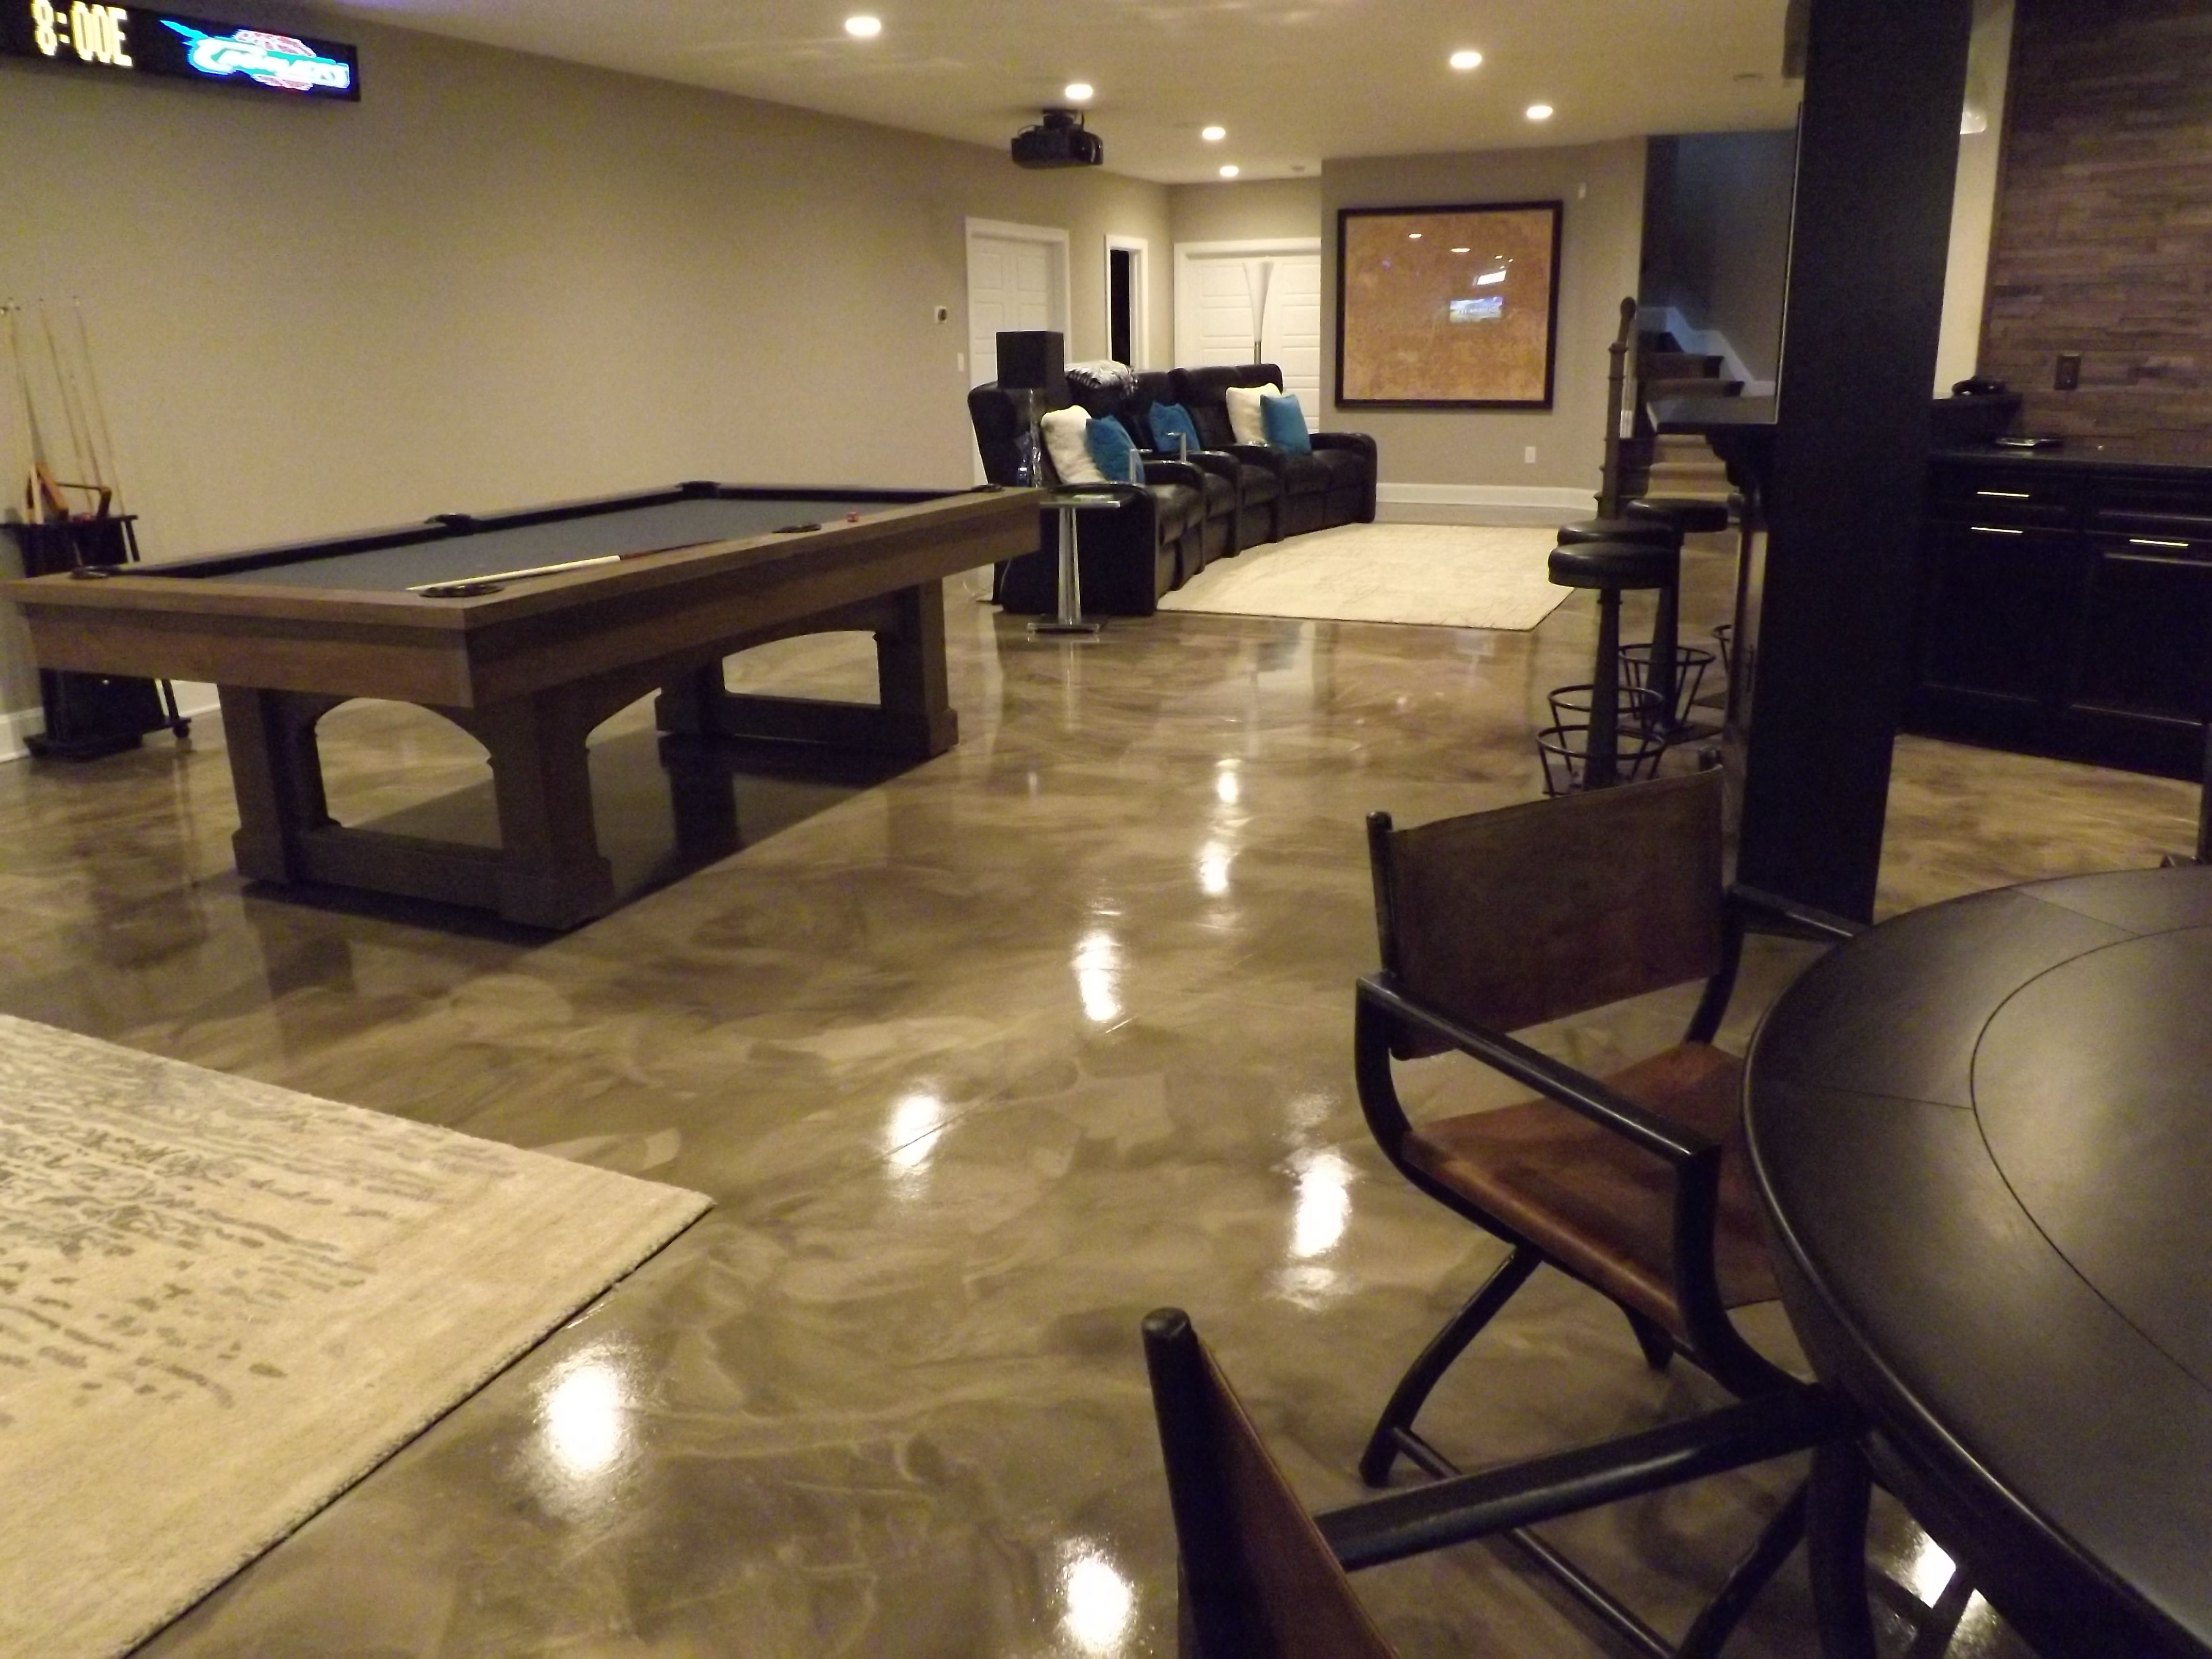 homes with keeping flooring epoxy gold in floors new coast business directory